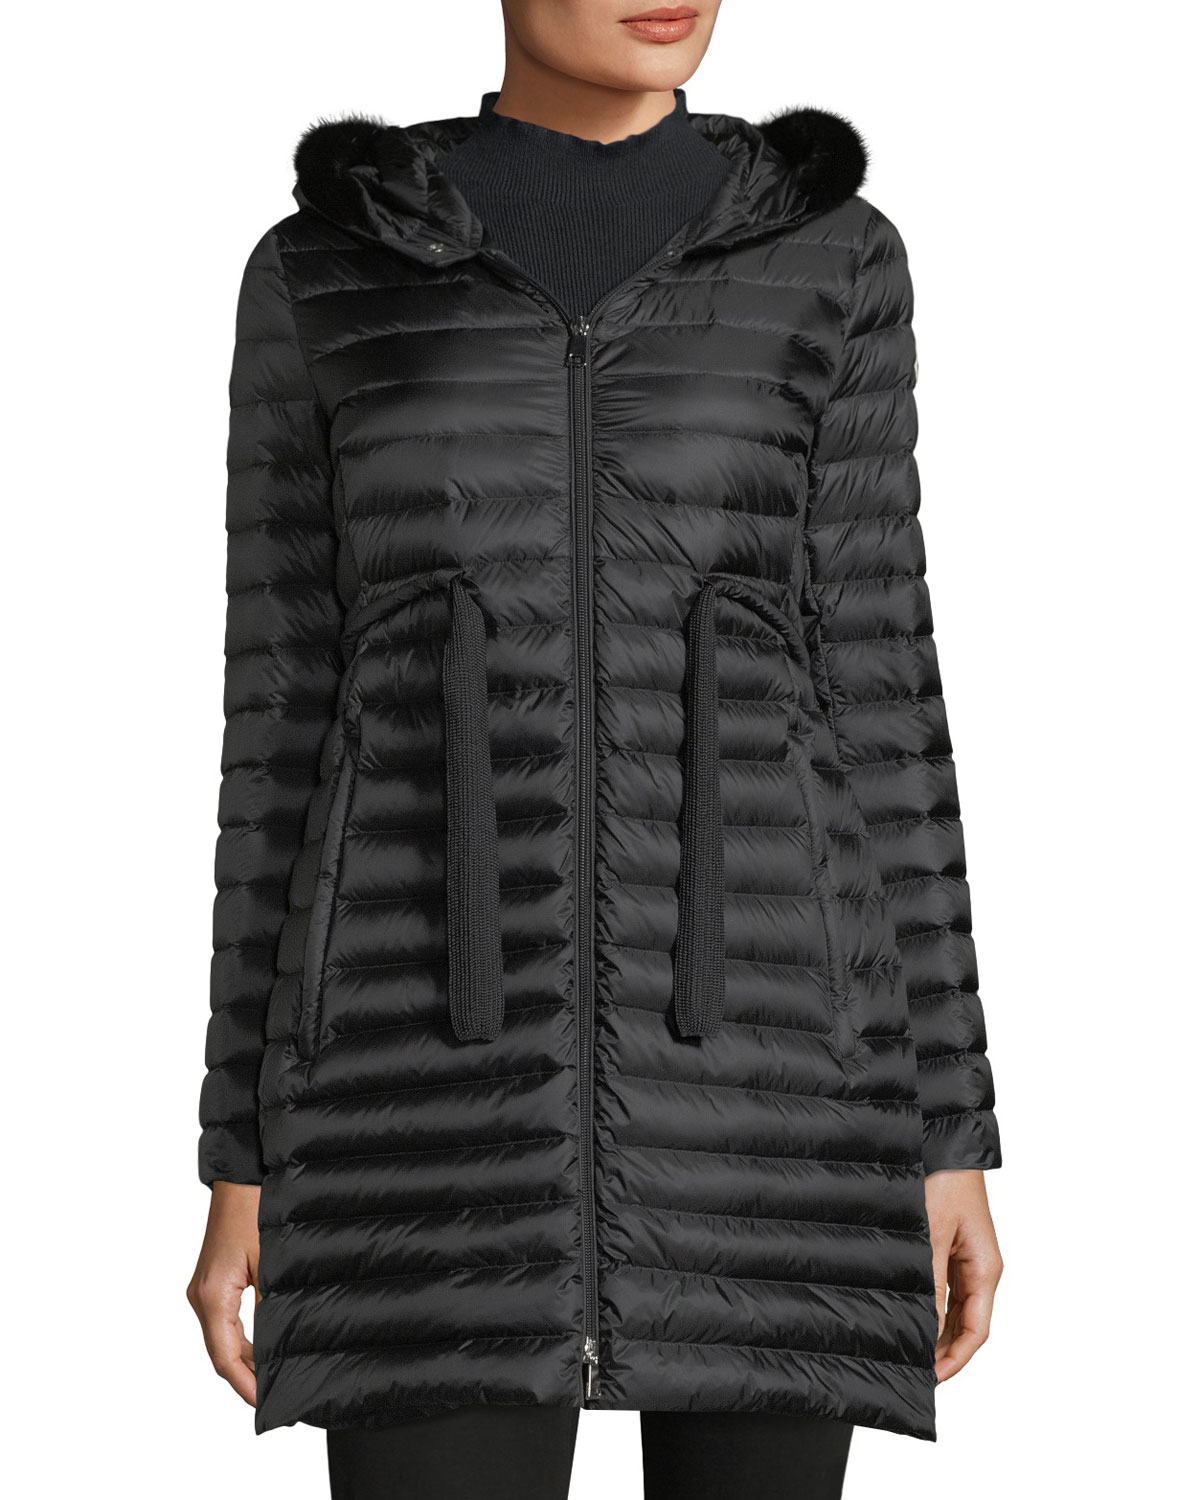 Barbel Quilted Puffer Coat with Fur Trim